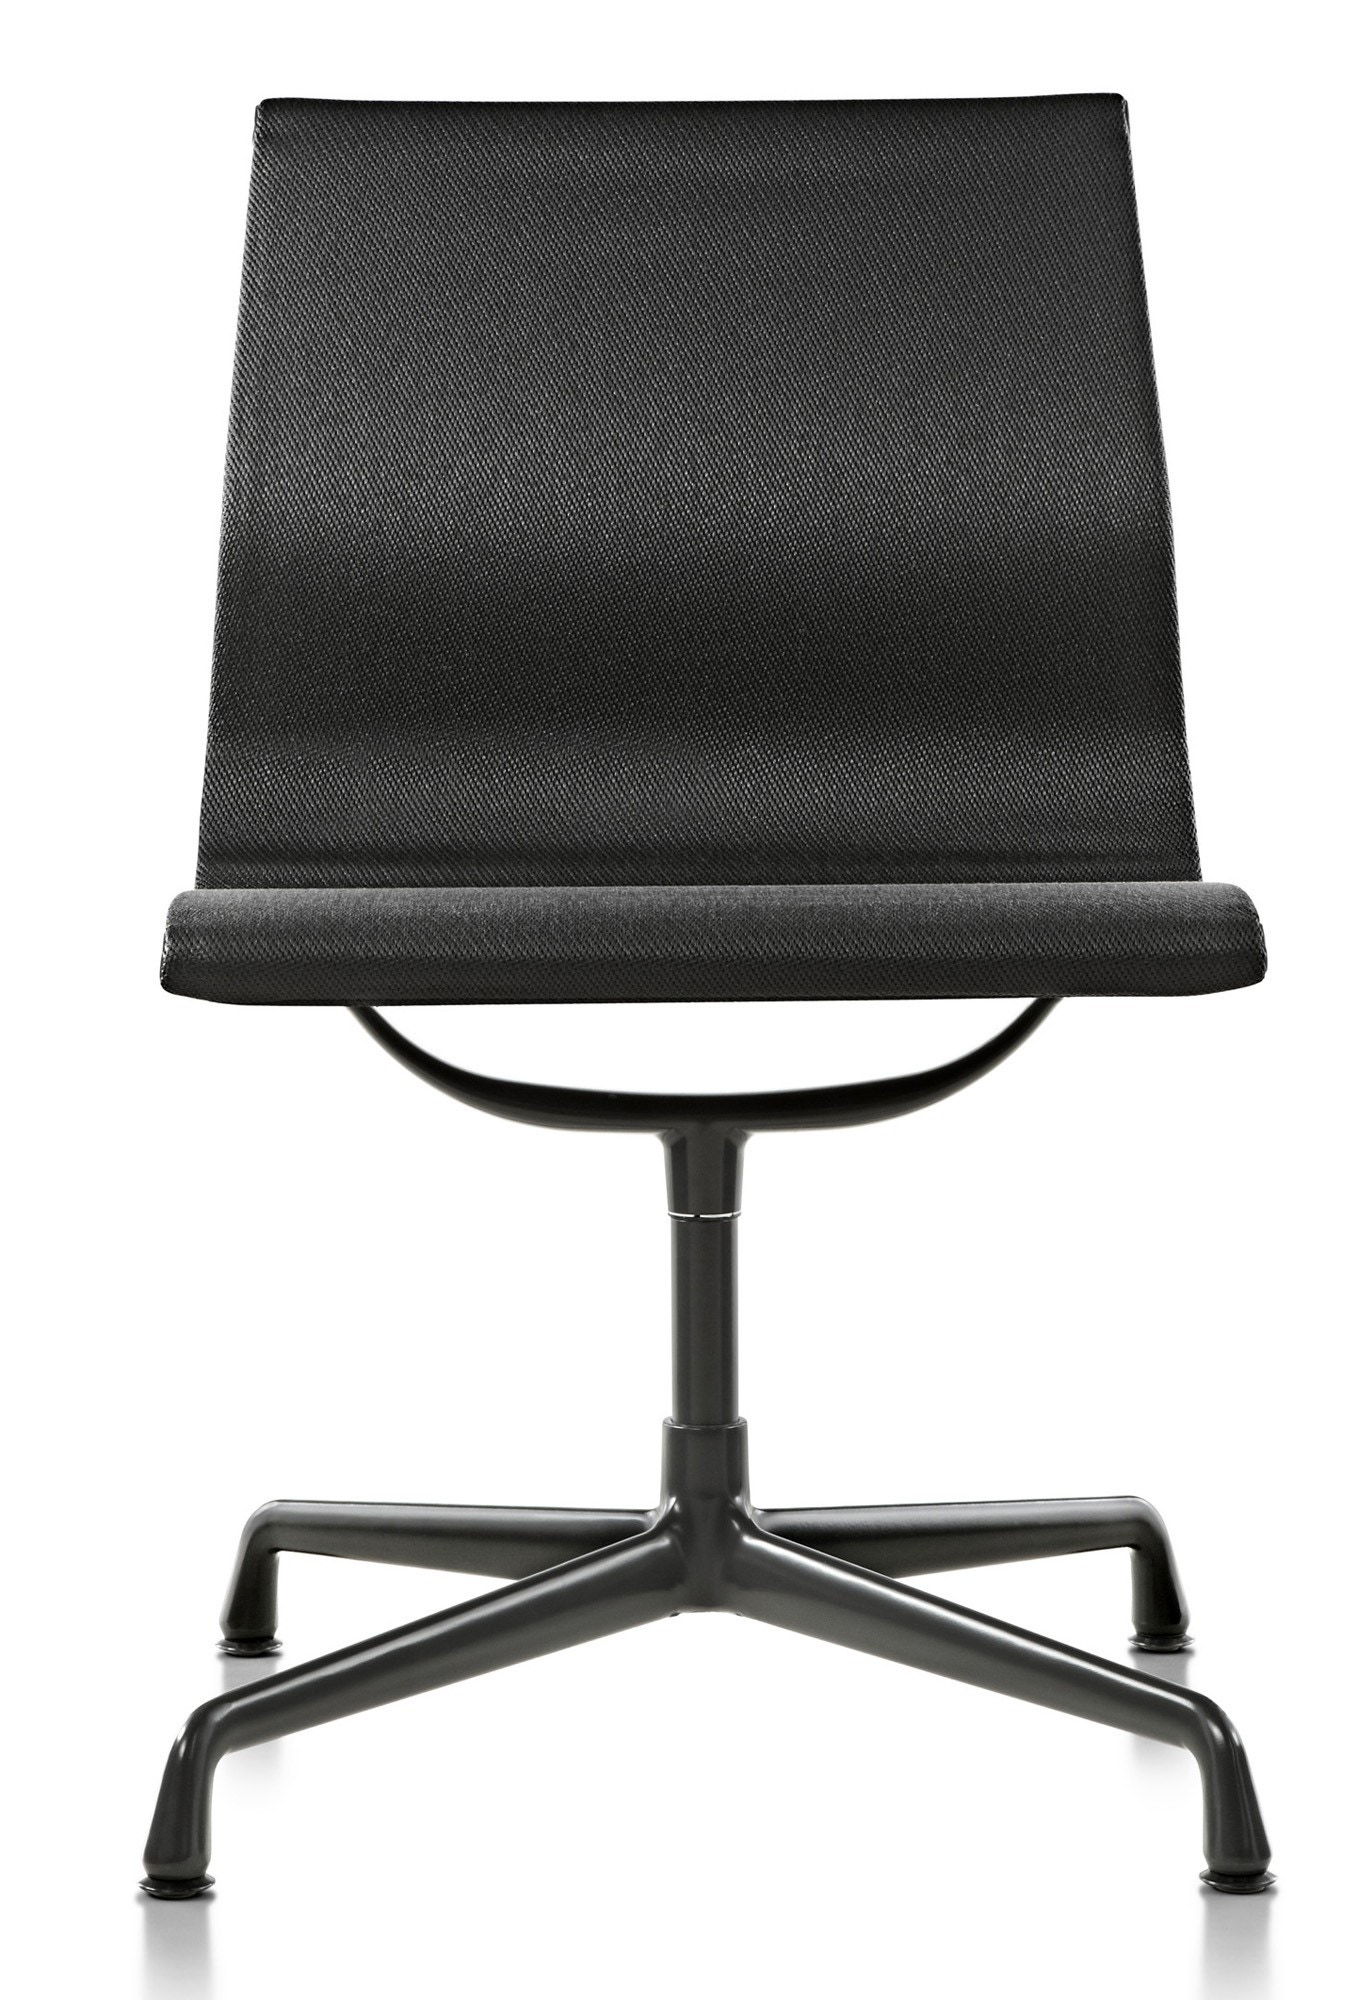 Herman Miller Eames Aluminum Group Side Chair Outdoor GR Shop